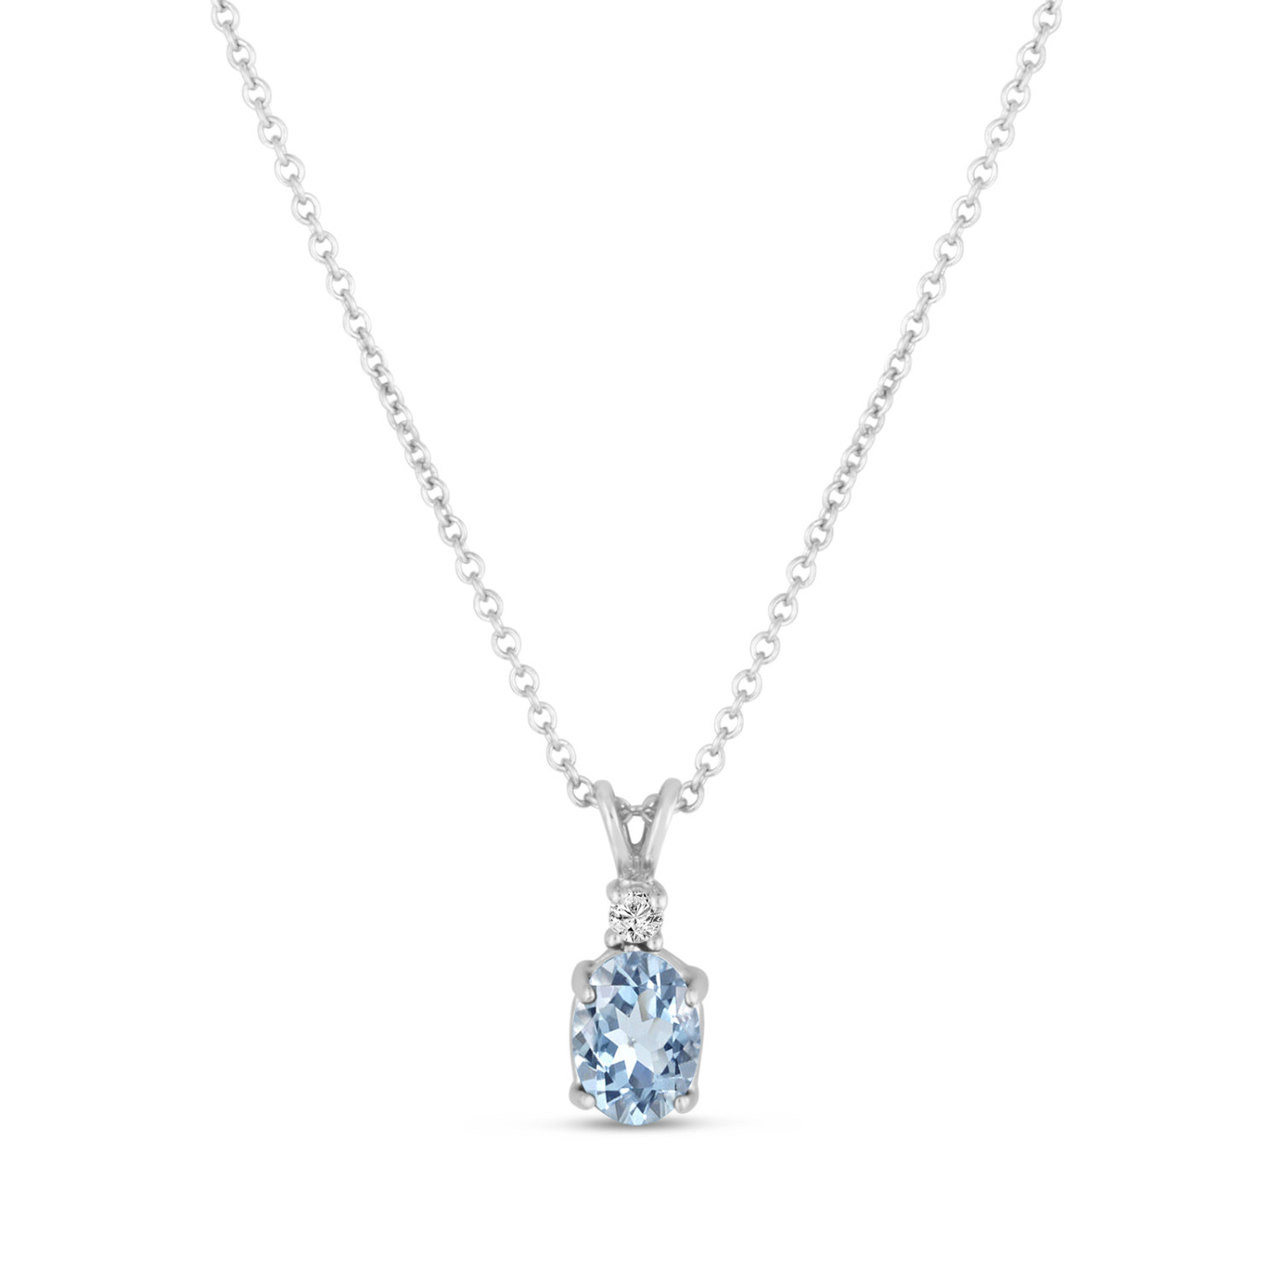 Oval aquamarine diamond solitaire pendant necklace 14k white gold oval aquamarine diamond solitaire pendant necklace 14k white gold 127 carat handmade aloadofball Image collections